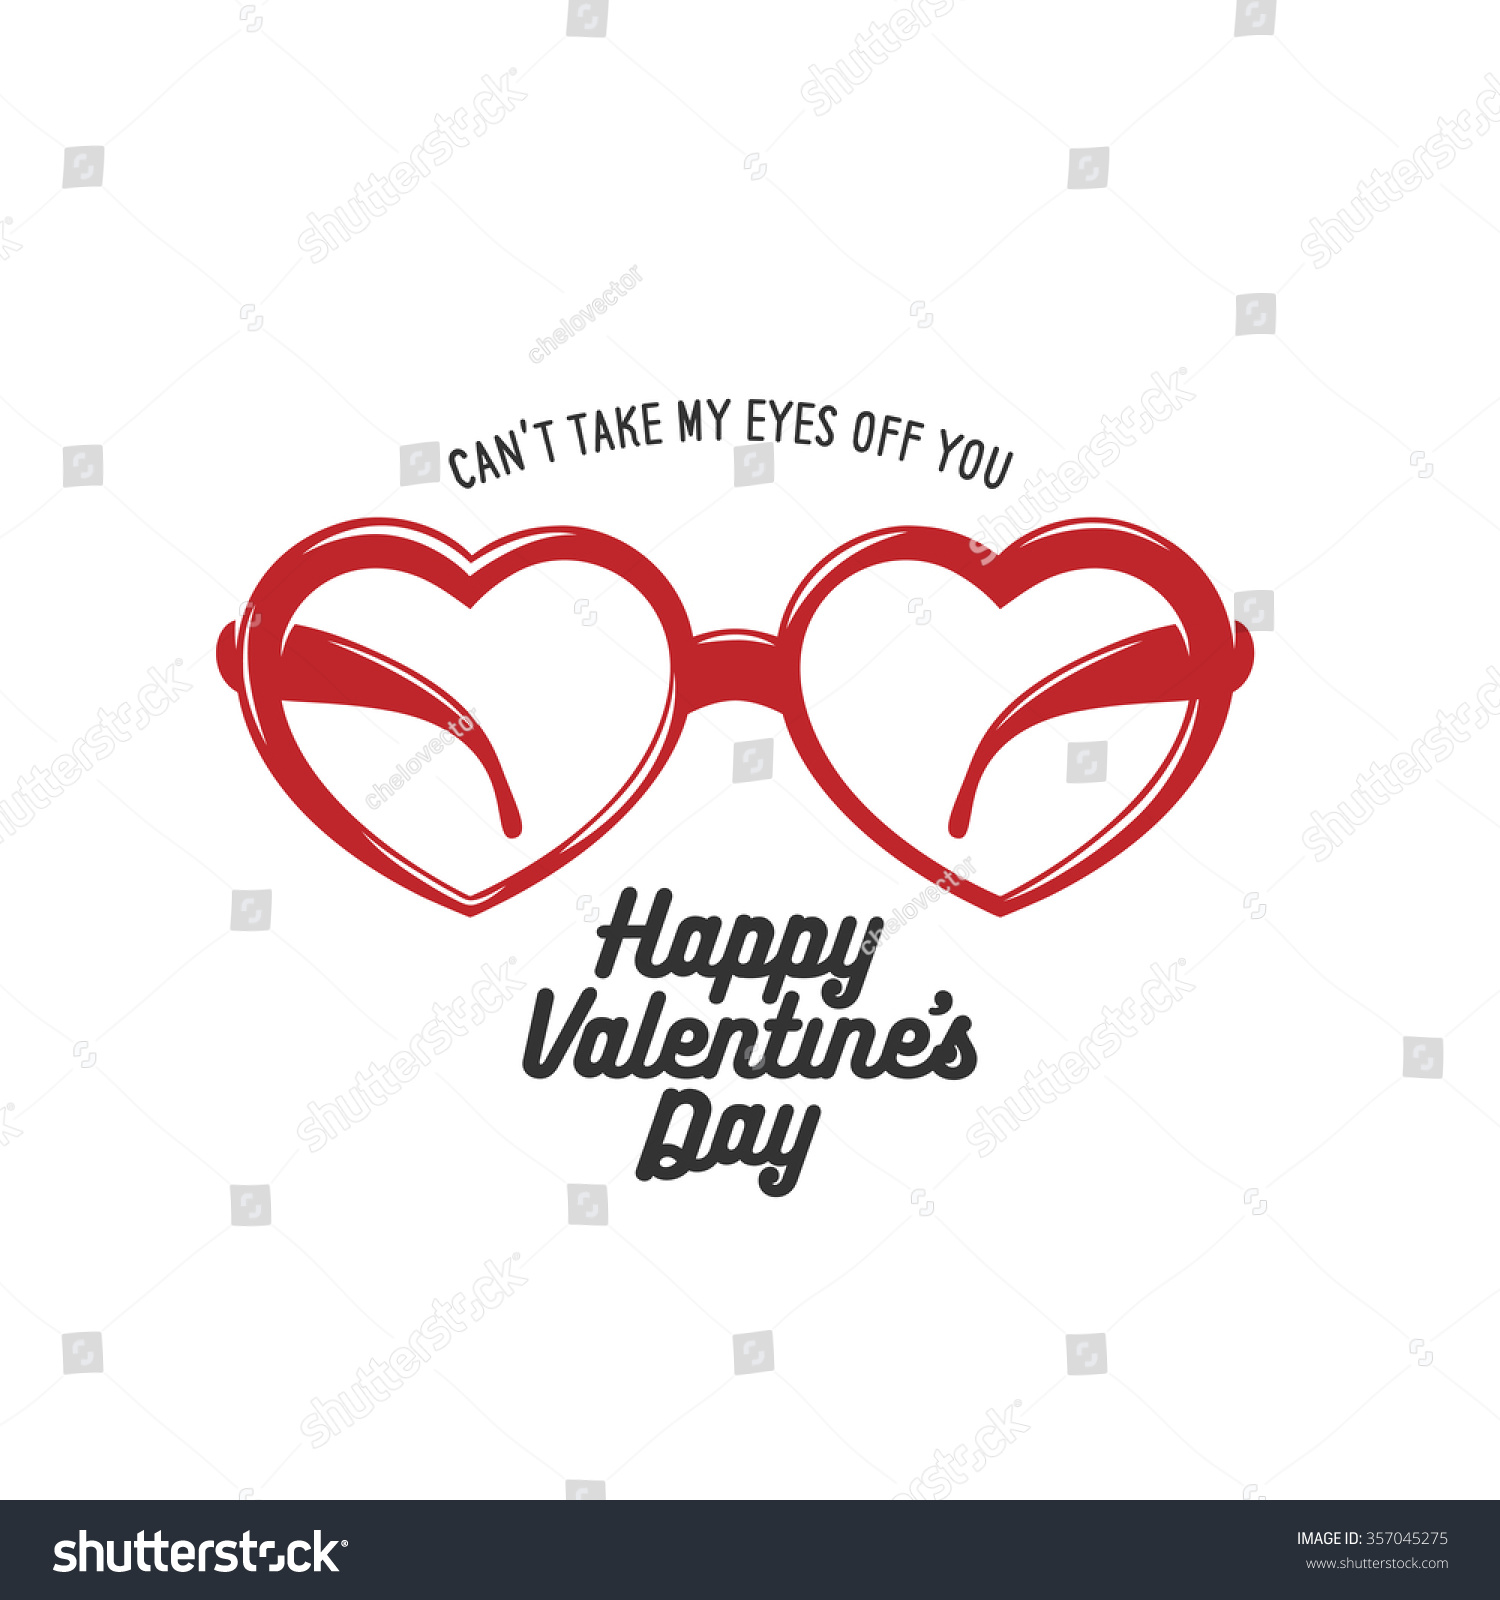 Valentine Day Card Heart Shaped Glasses Stock Vector HD Royalty